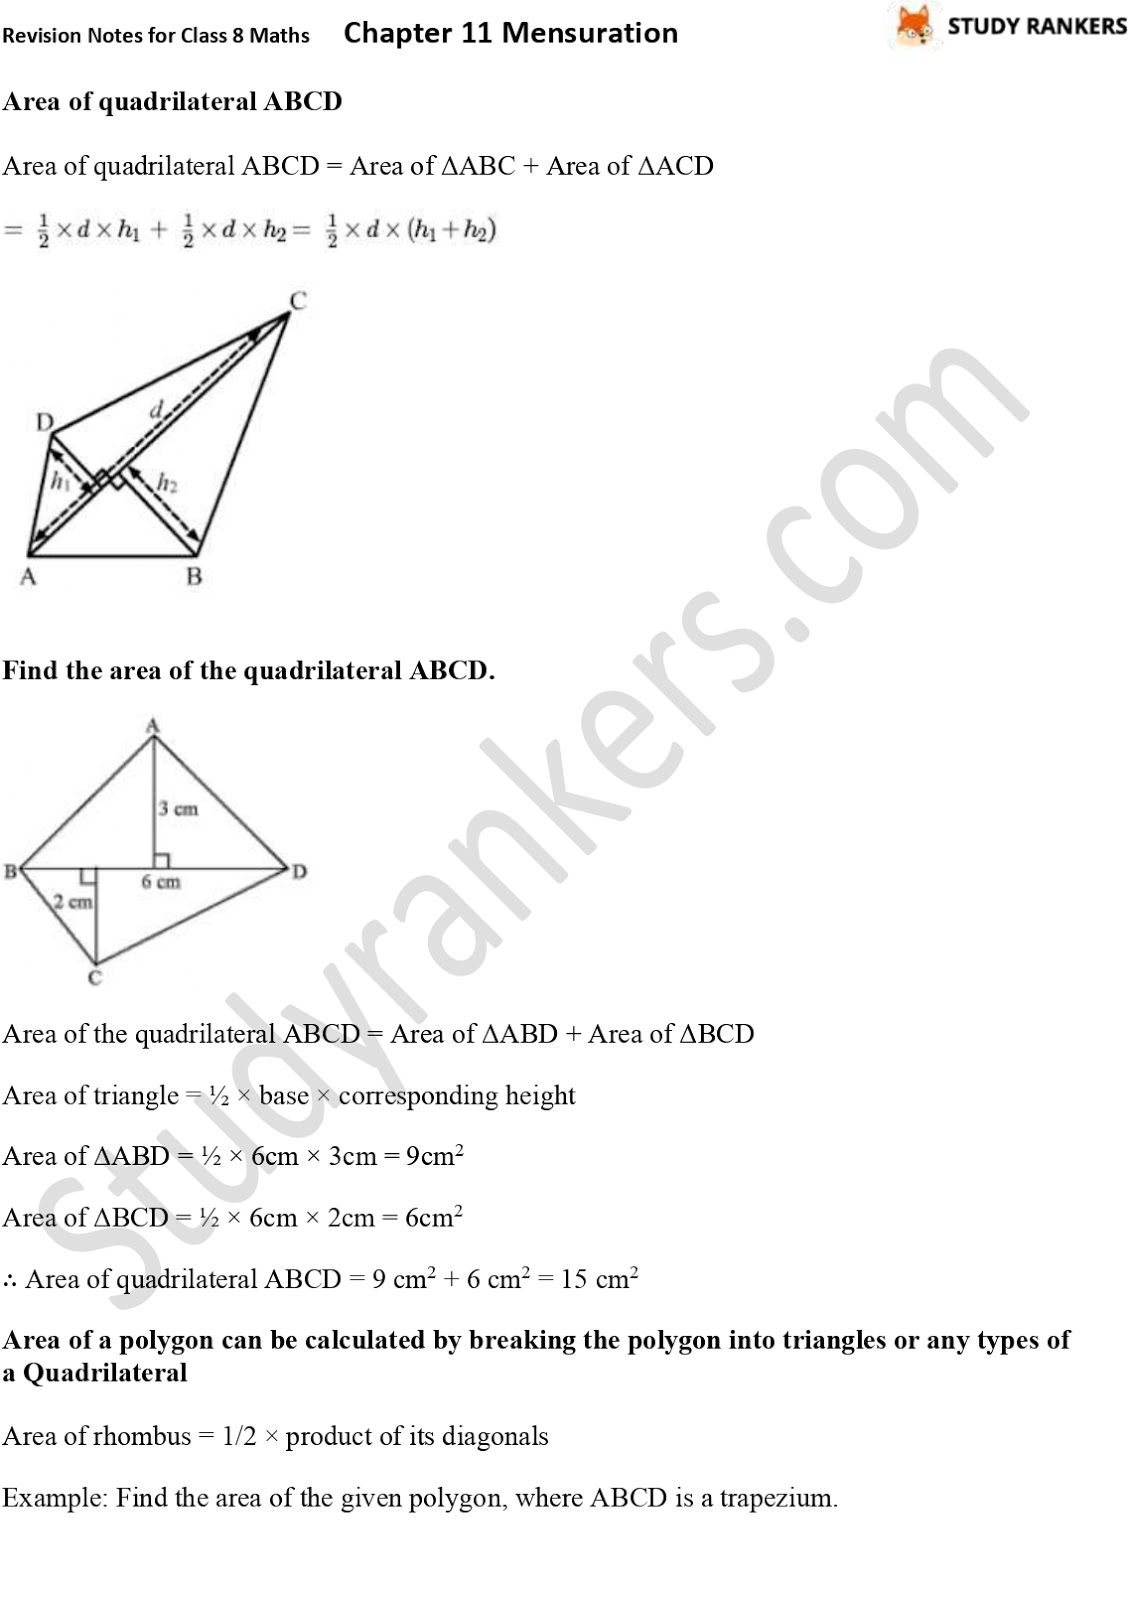 CBSE Revision Notes for Class 8 Chapter 11 Mensuration Part 2